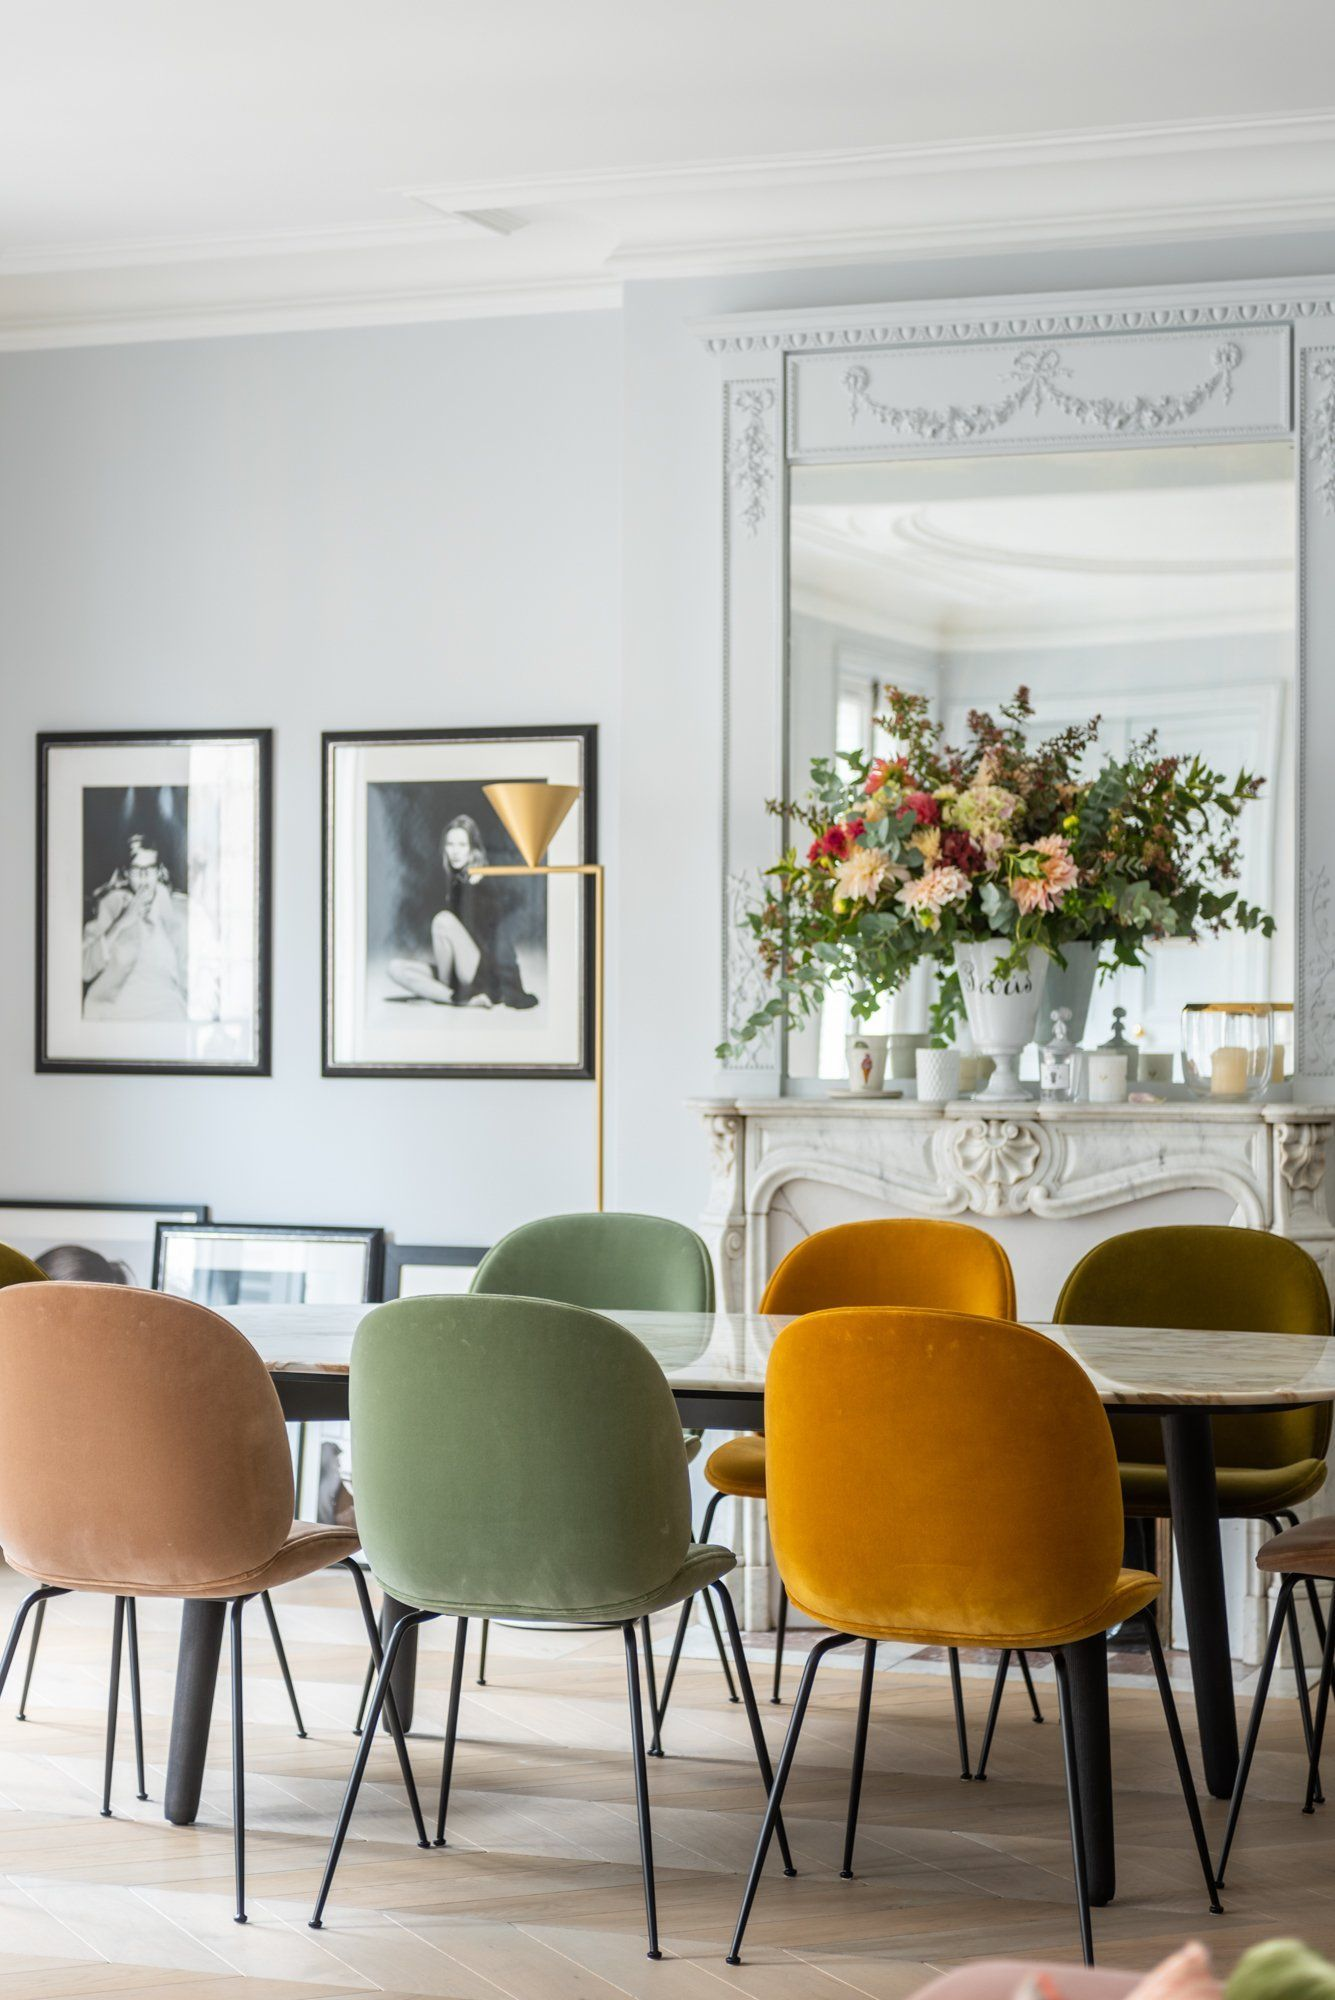 The Socialite Family Salle A Manger Coloree Chez Florence Elkouby Thesocialitefamily Inspiration Salle A Manger Deco Salle A Manger Salle A Manger De Luxe